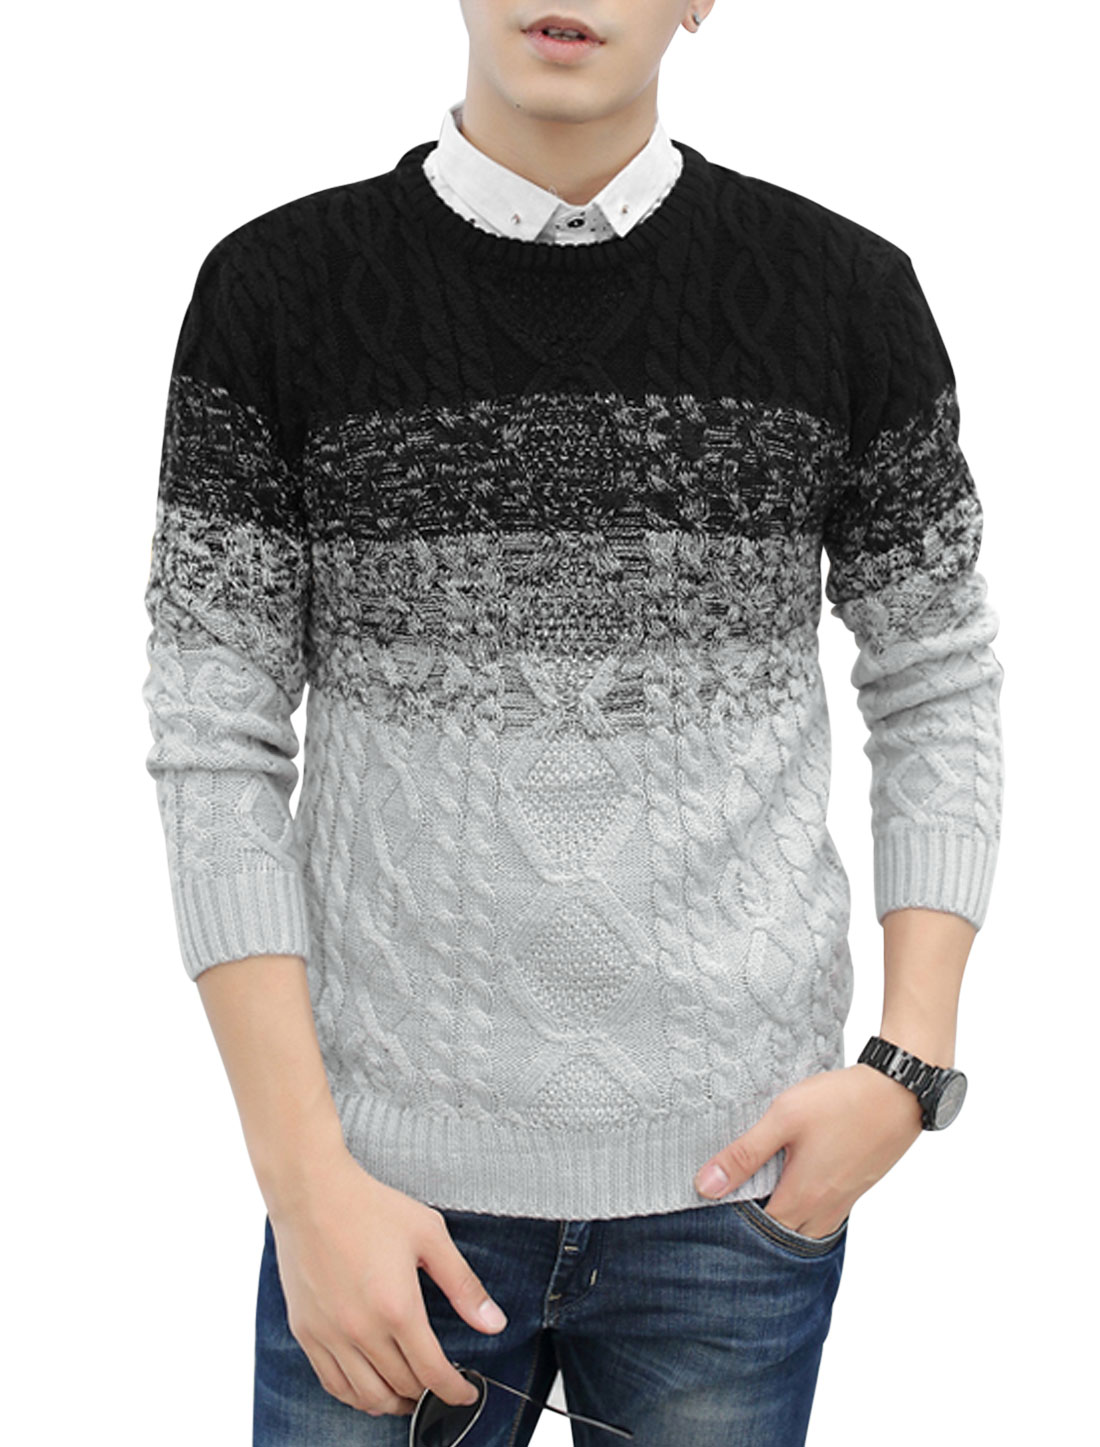 Men Round Neck Color Blocked Long Sleeves Casual Sweater Black Light Gray S